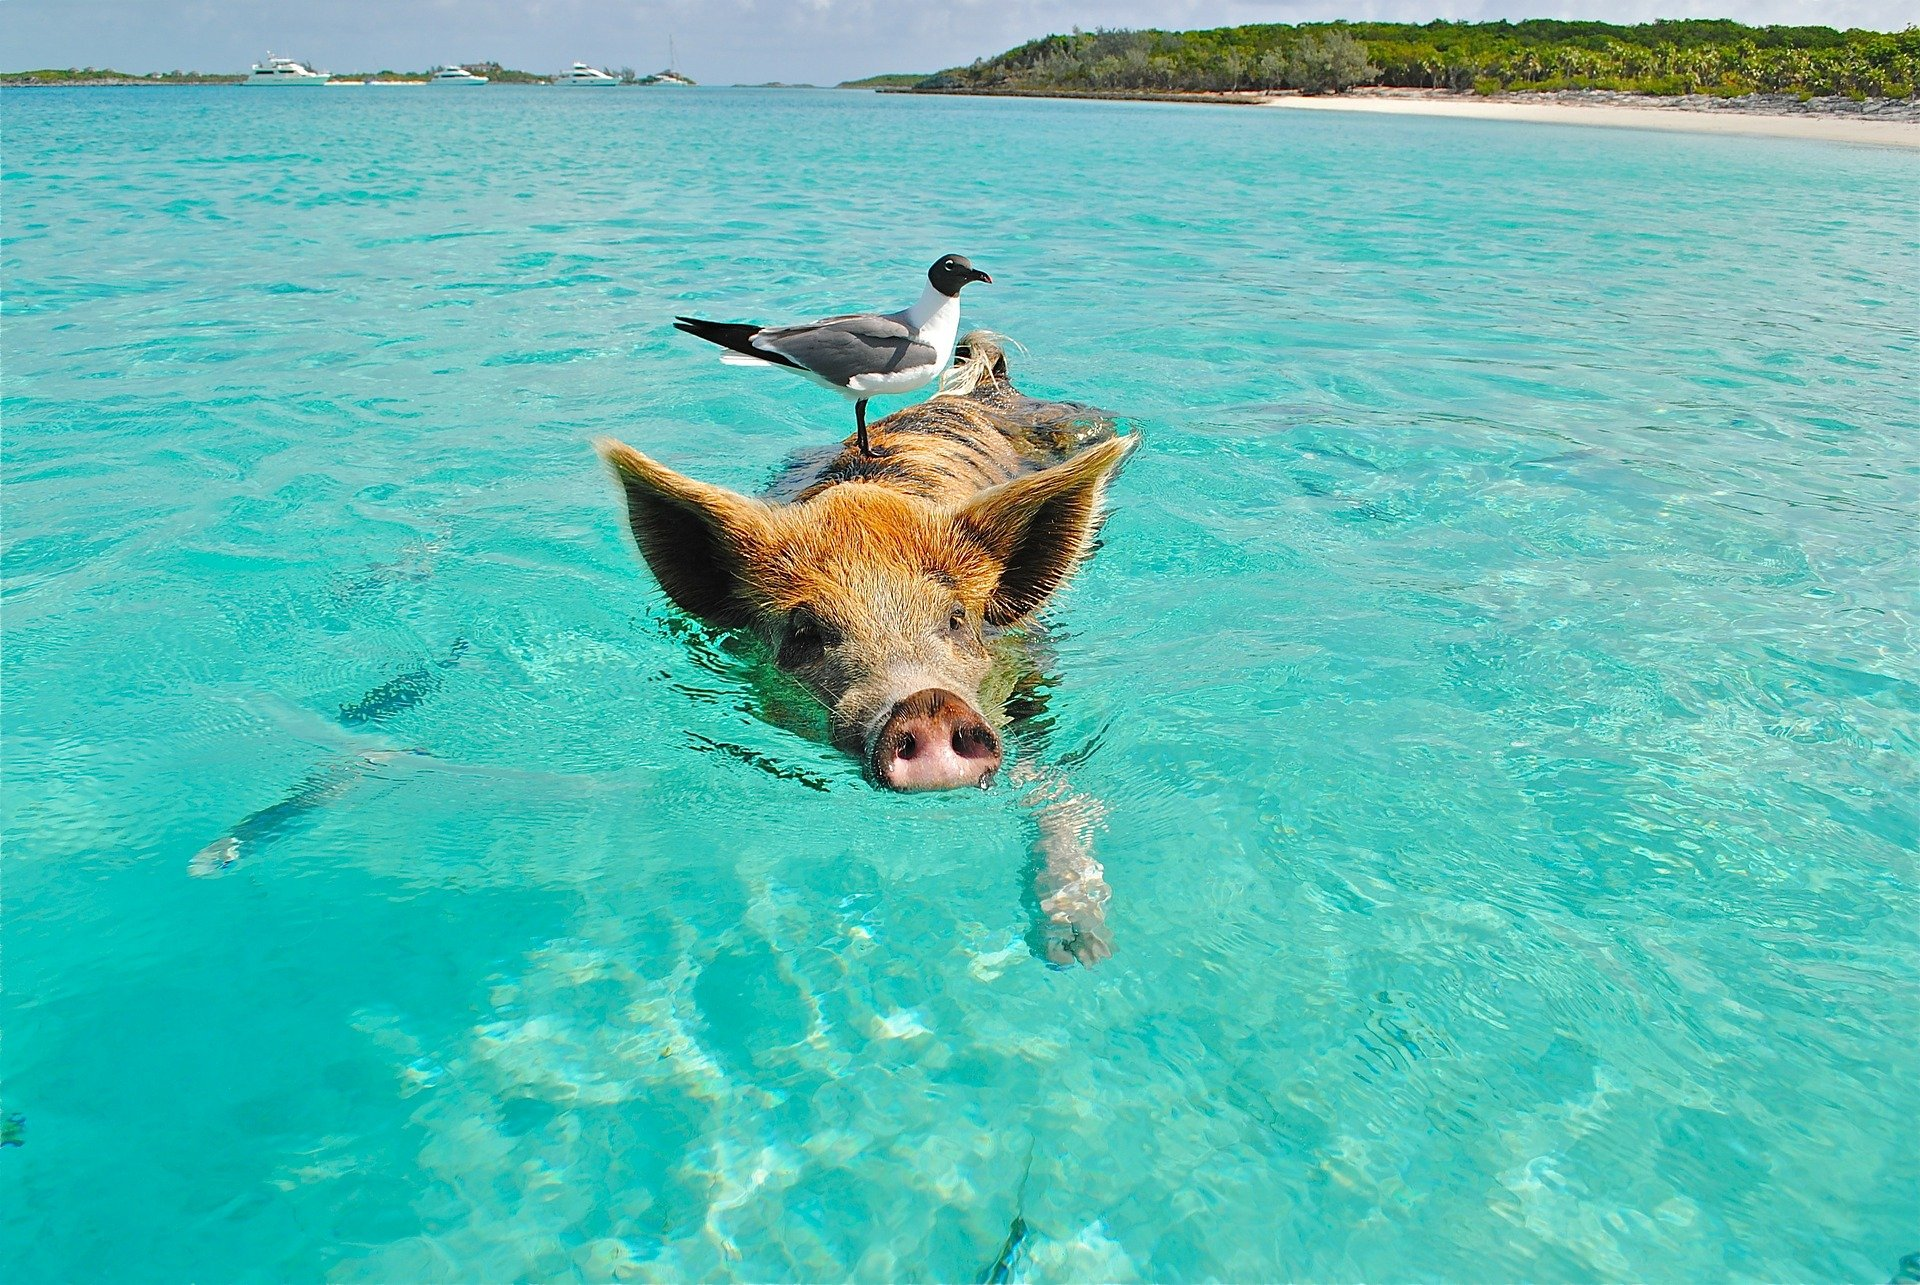 pig swimming with bird on its back in Exumas